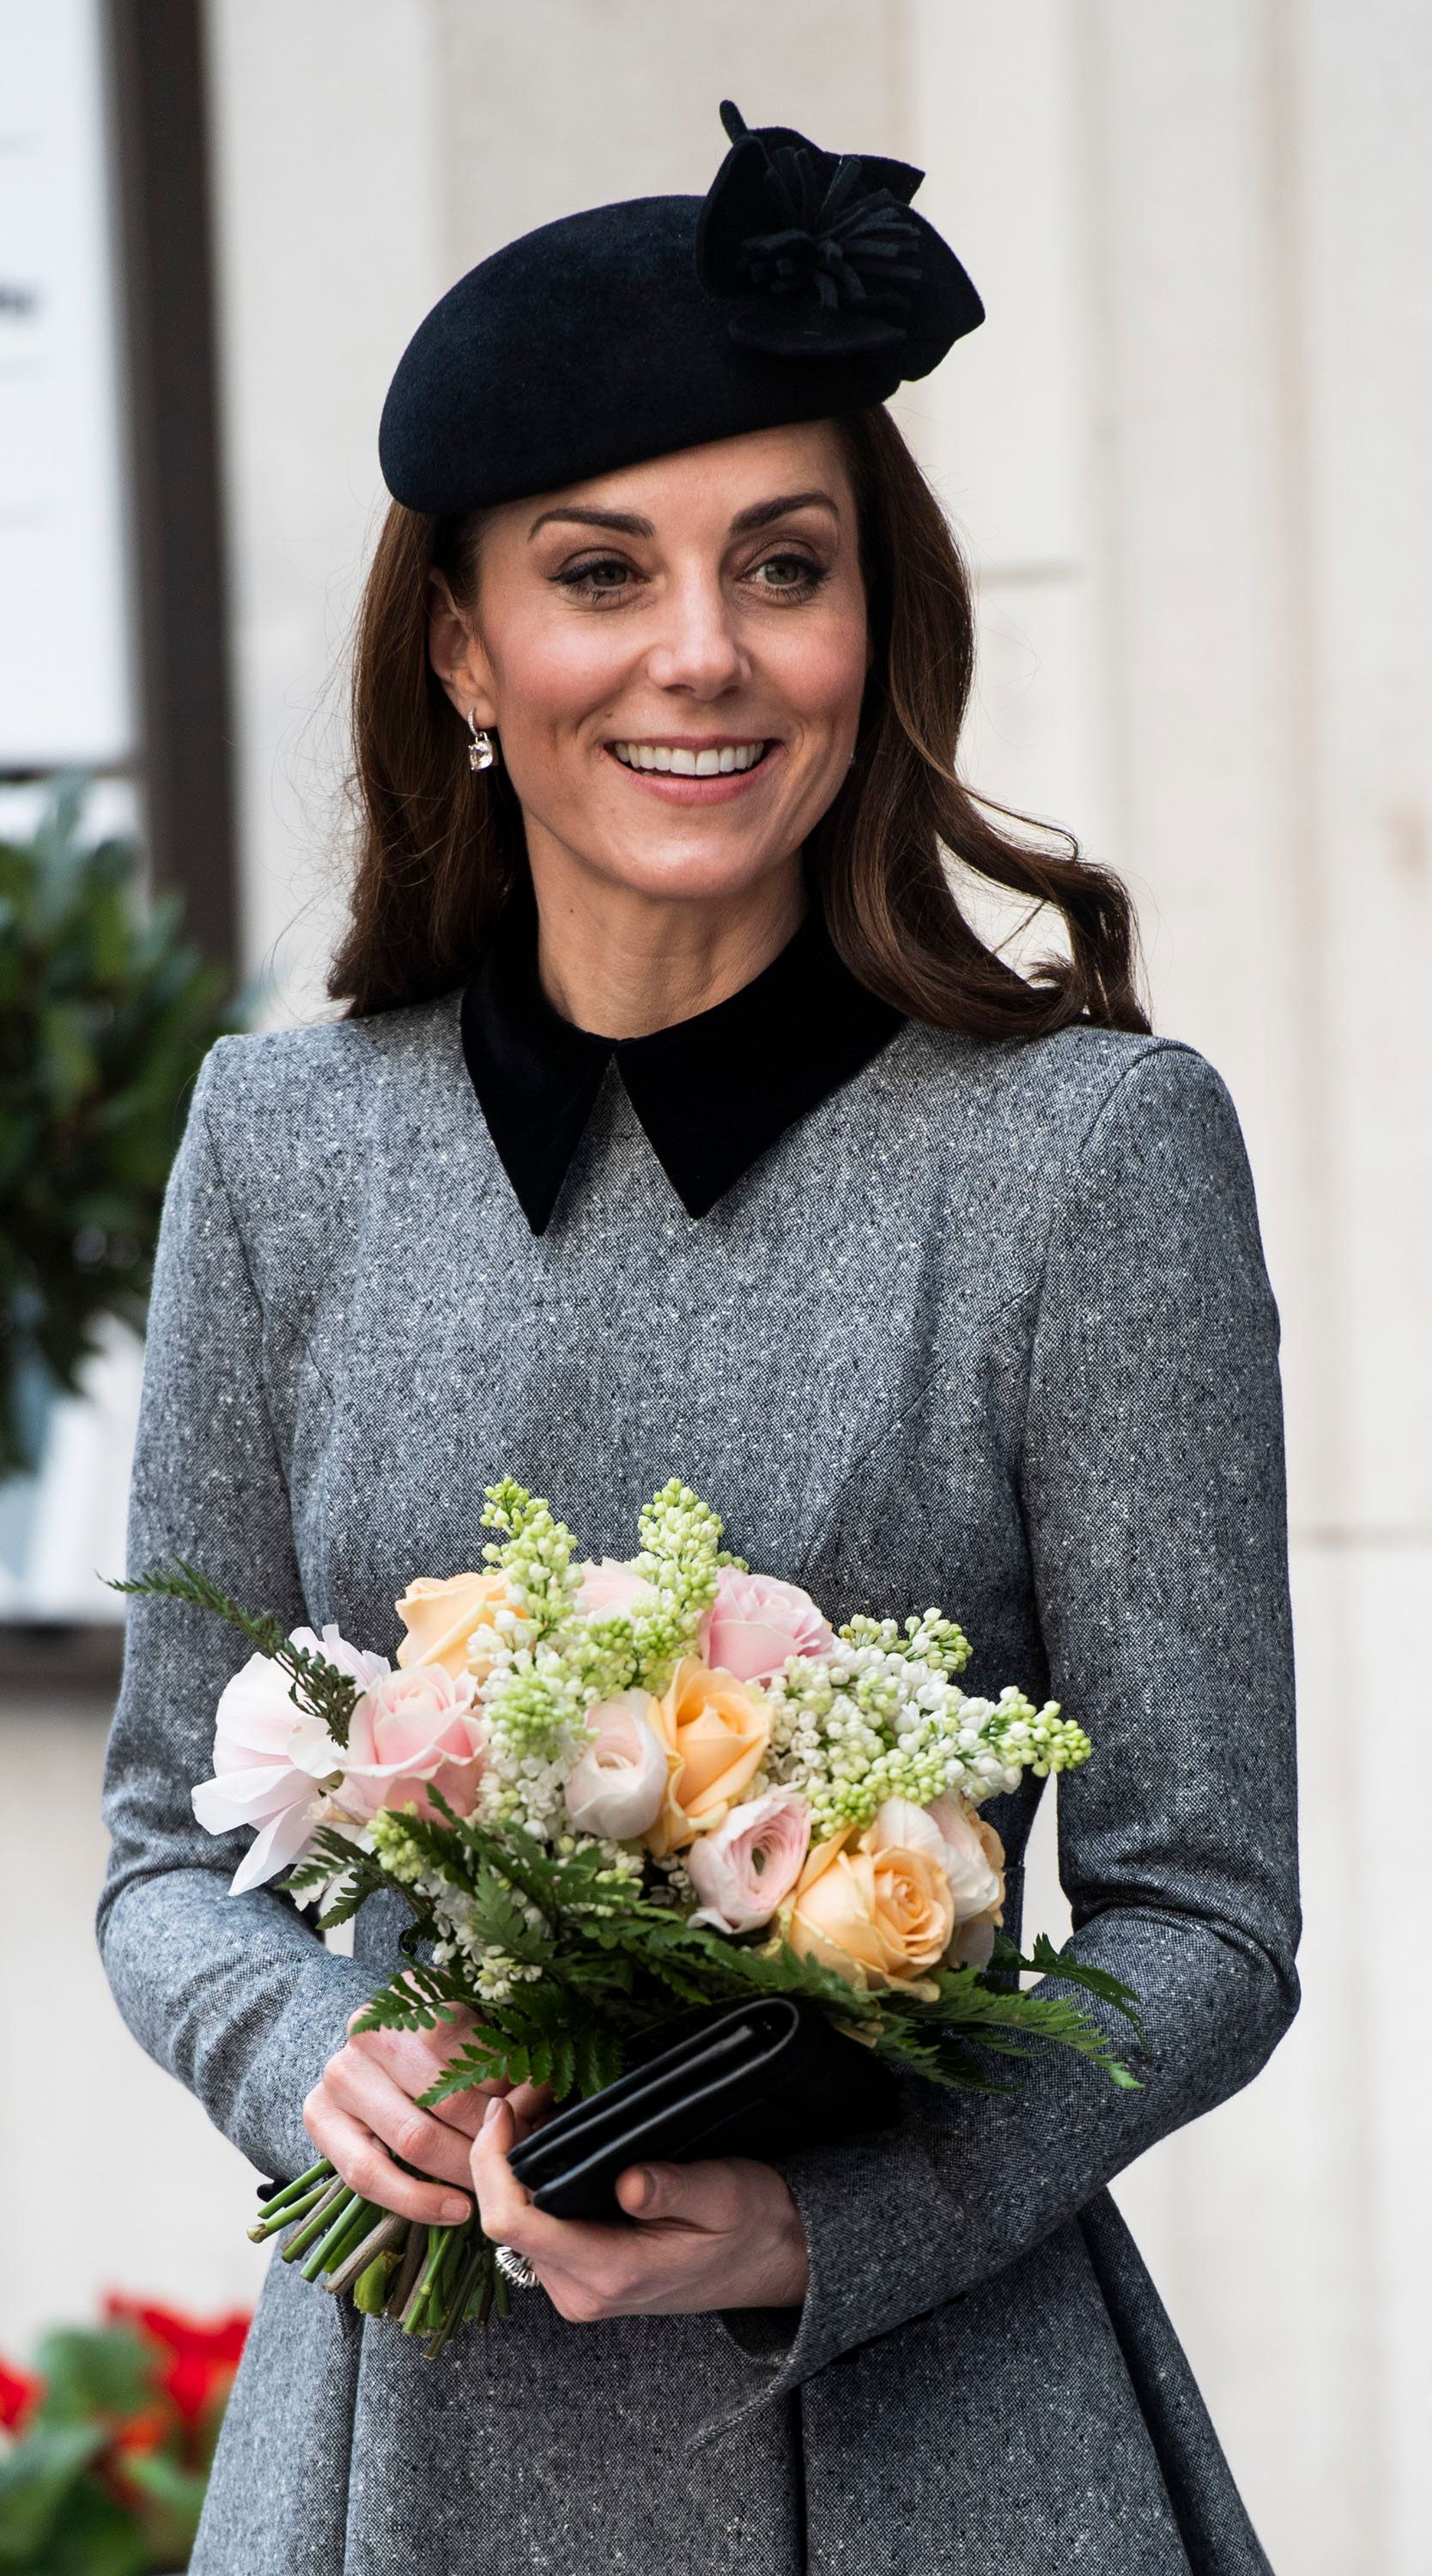 LONDON, ENGLAND - MARCH 19: Catherine, Duchess of Cambridge visits King's College to officially open Bush House, the latest education and learning facilities on the Strand Campus on March 19, 2019 in London, England. (Photo by Mark Cuthbert/UK Press via Getty Images)